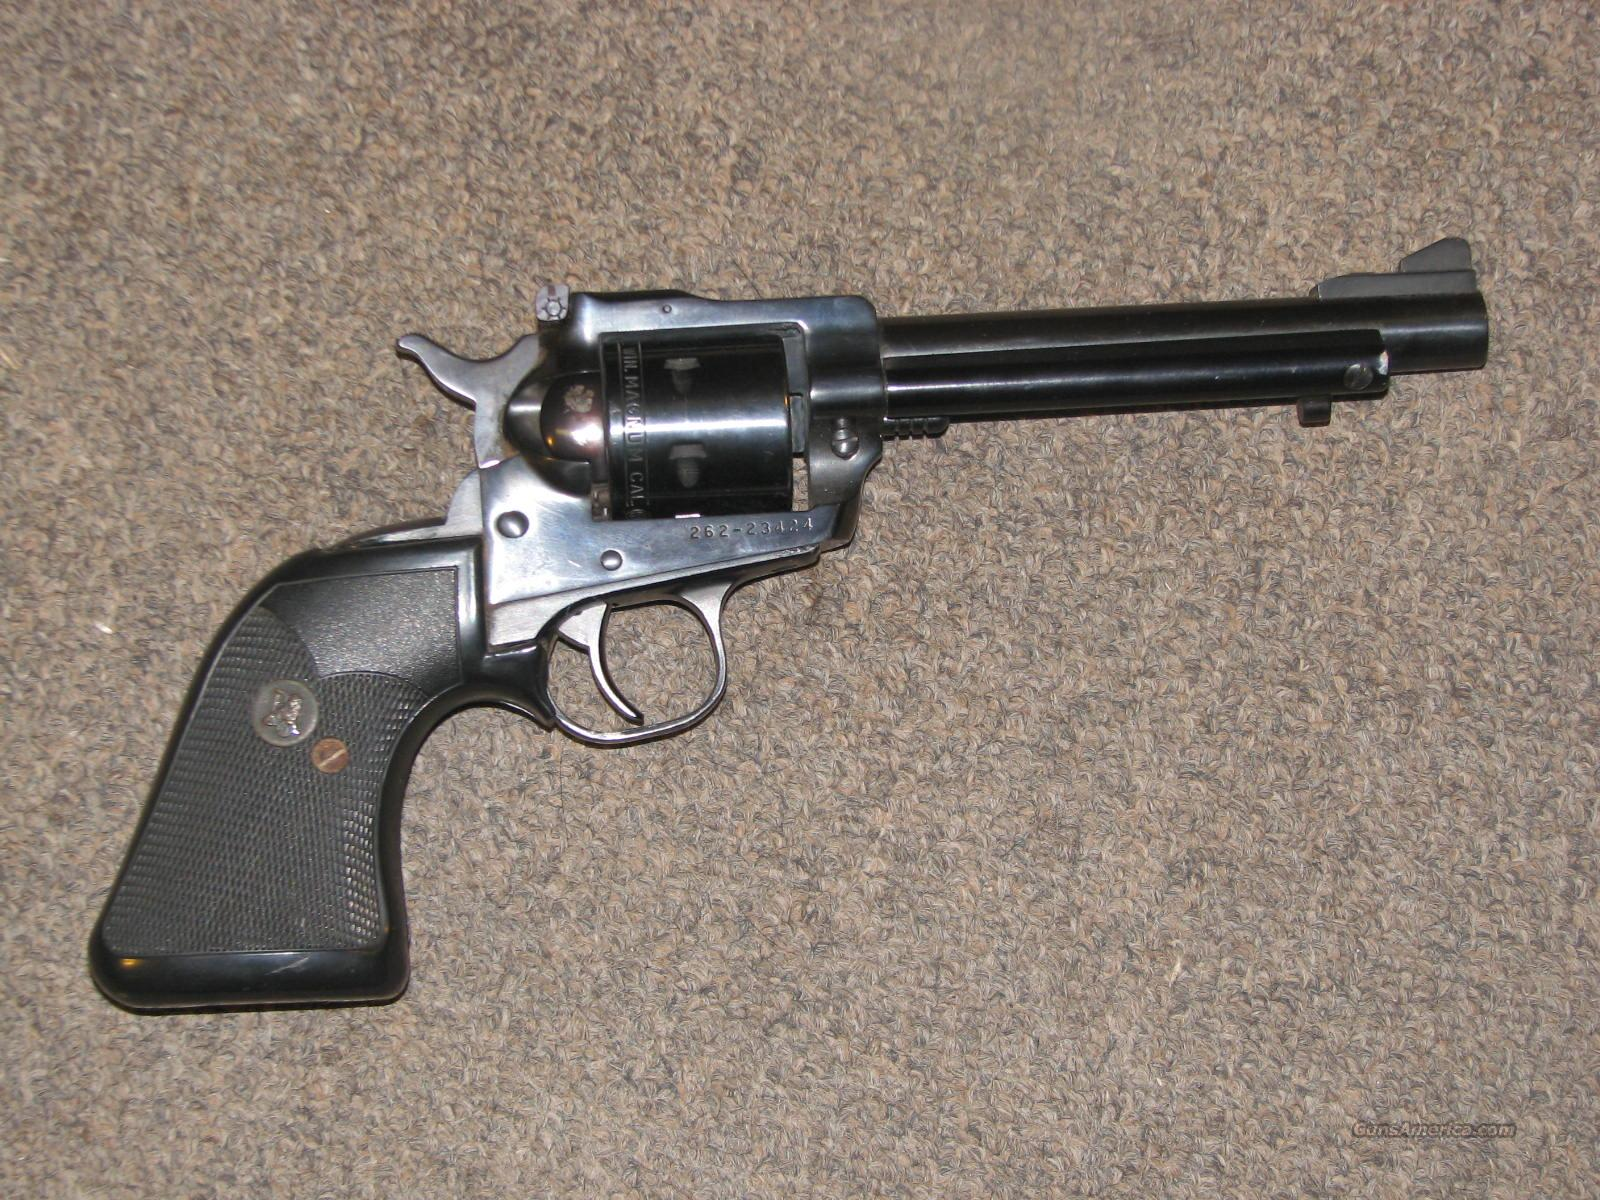 RUGER SINGLE SIX .22 MAG w/ PACHMAYR GRIPS  Guns > Pistols > Ruger Single Action Revolvers > Single Six Type